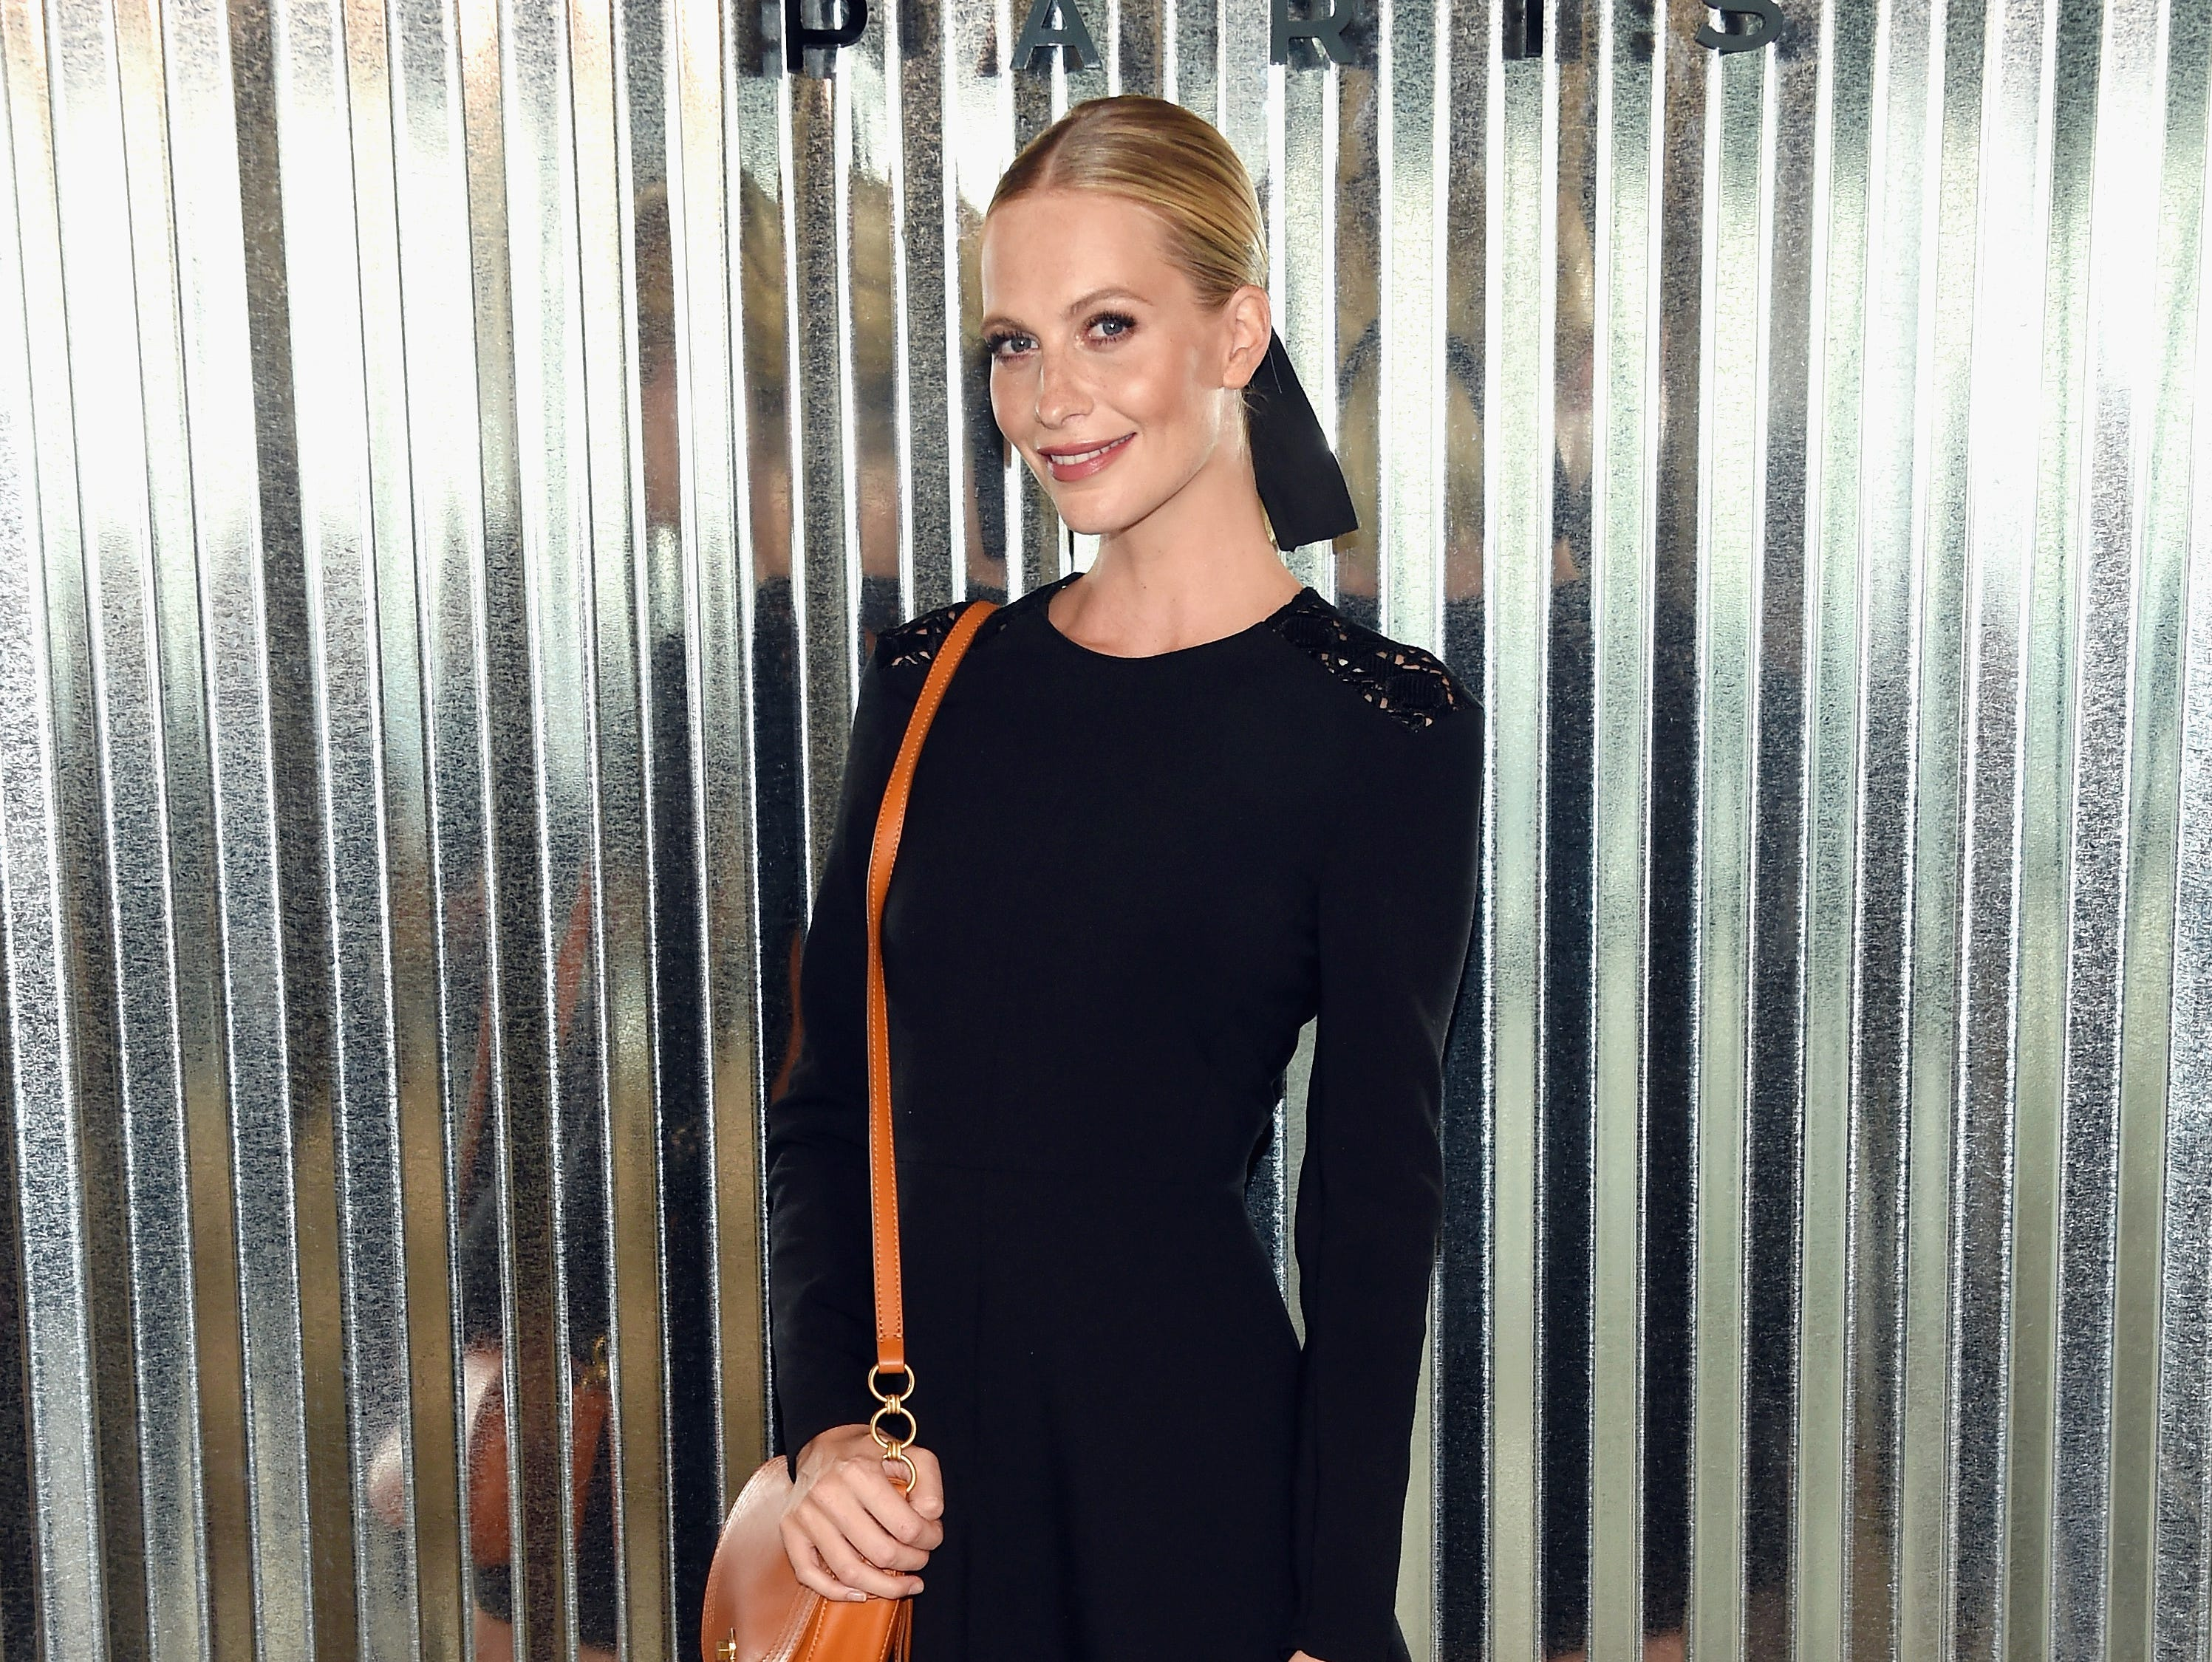 NEW YORK, NY - SEPTEMBER 08:  Poppy Delevingne attends the Longchamp Spring 2019 runway show during New York Fashion Week at World Trade Center on September 8, 2018 in New York, New York.  (Photo by Dimitrios Kambouris/Getty Images) ORG XMIT: 775216457 ORIG FILE ID: 1029388454